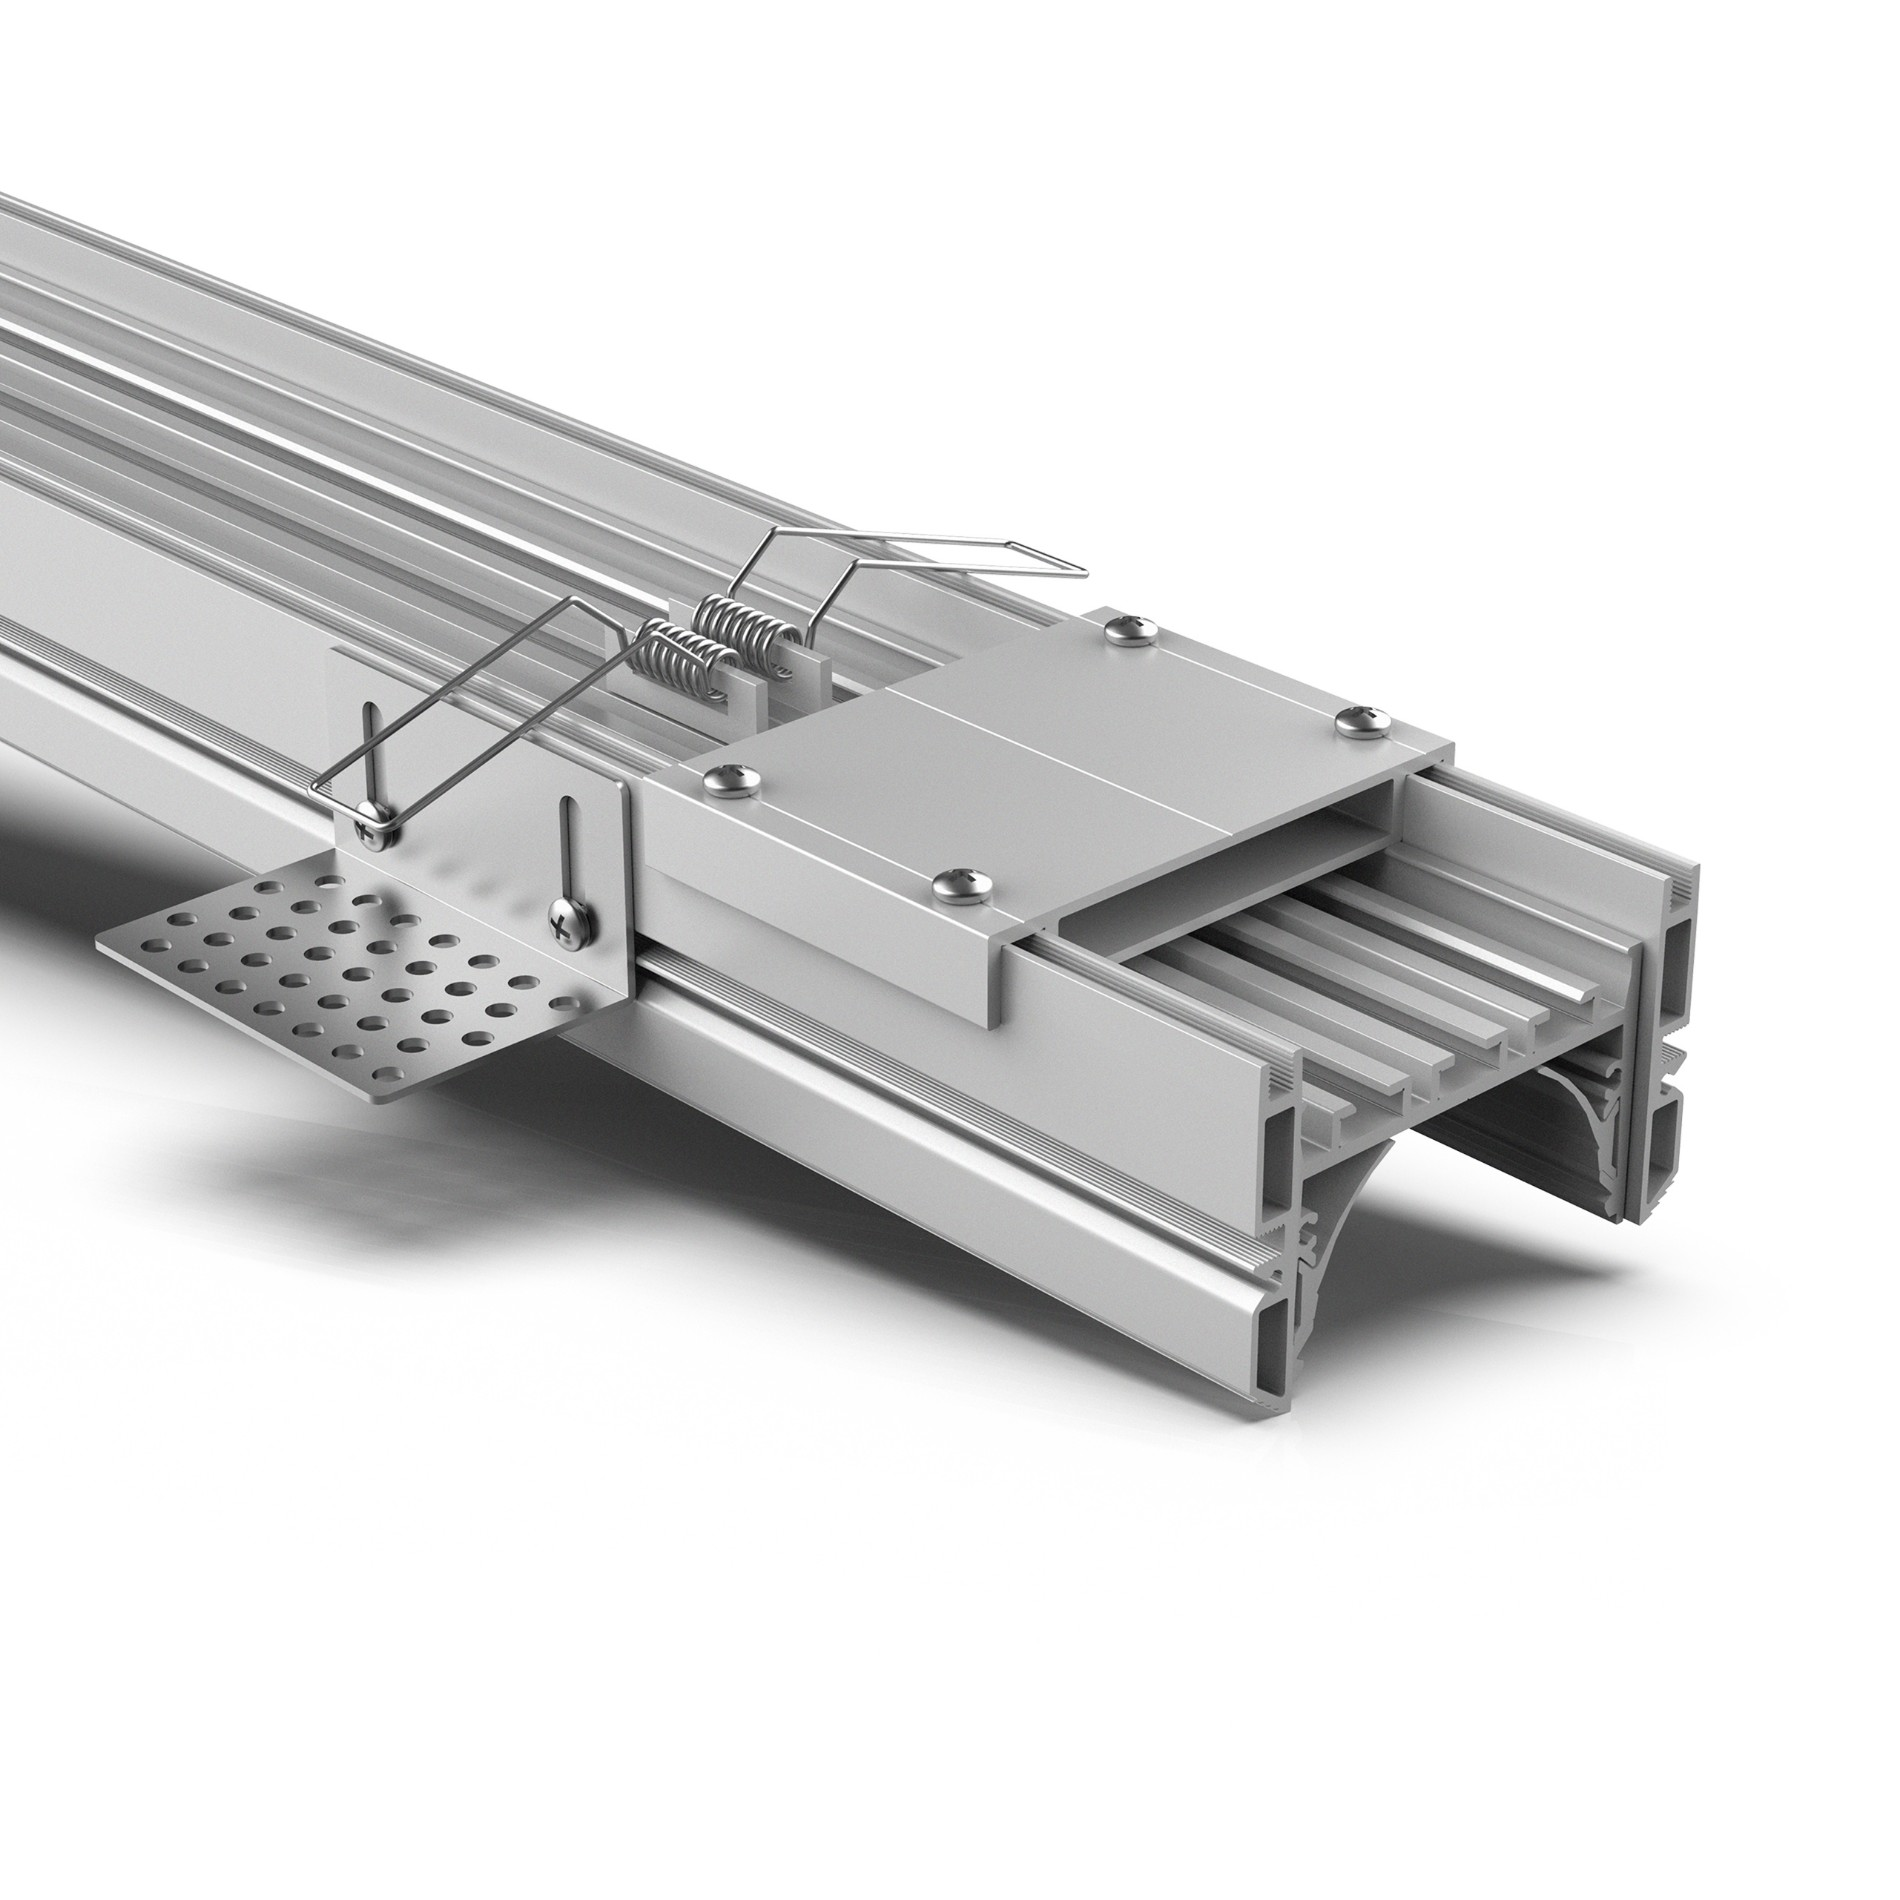 TR60 60mm Trimless led profile for gypsum ceiling 74.7x48mm